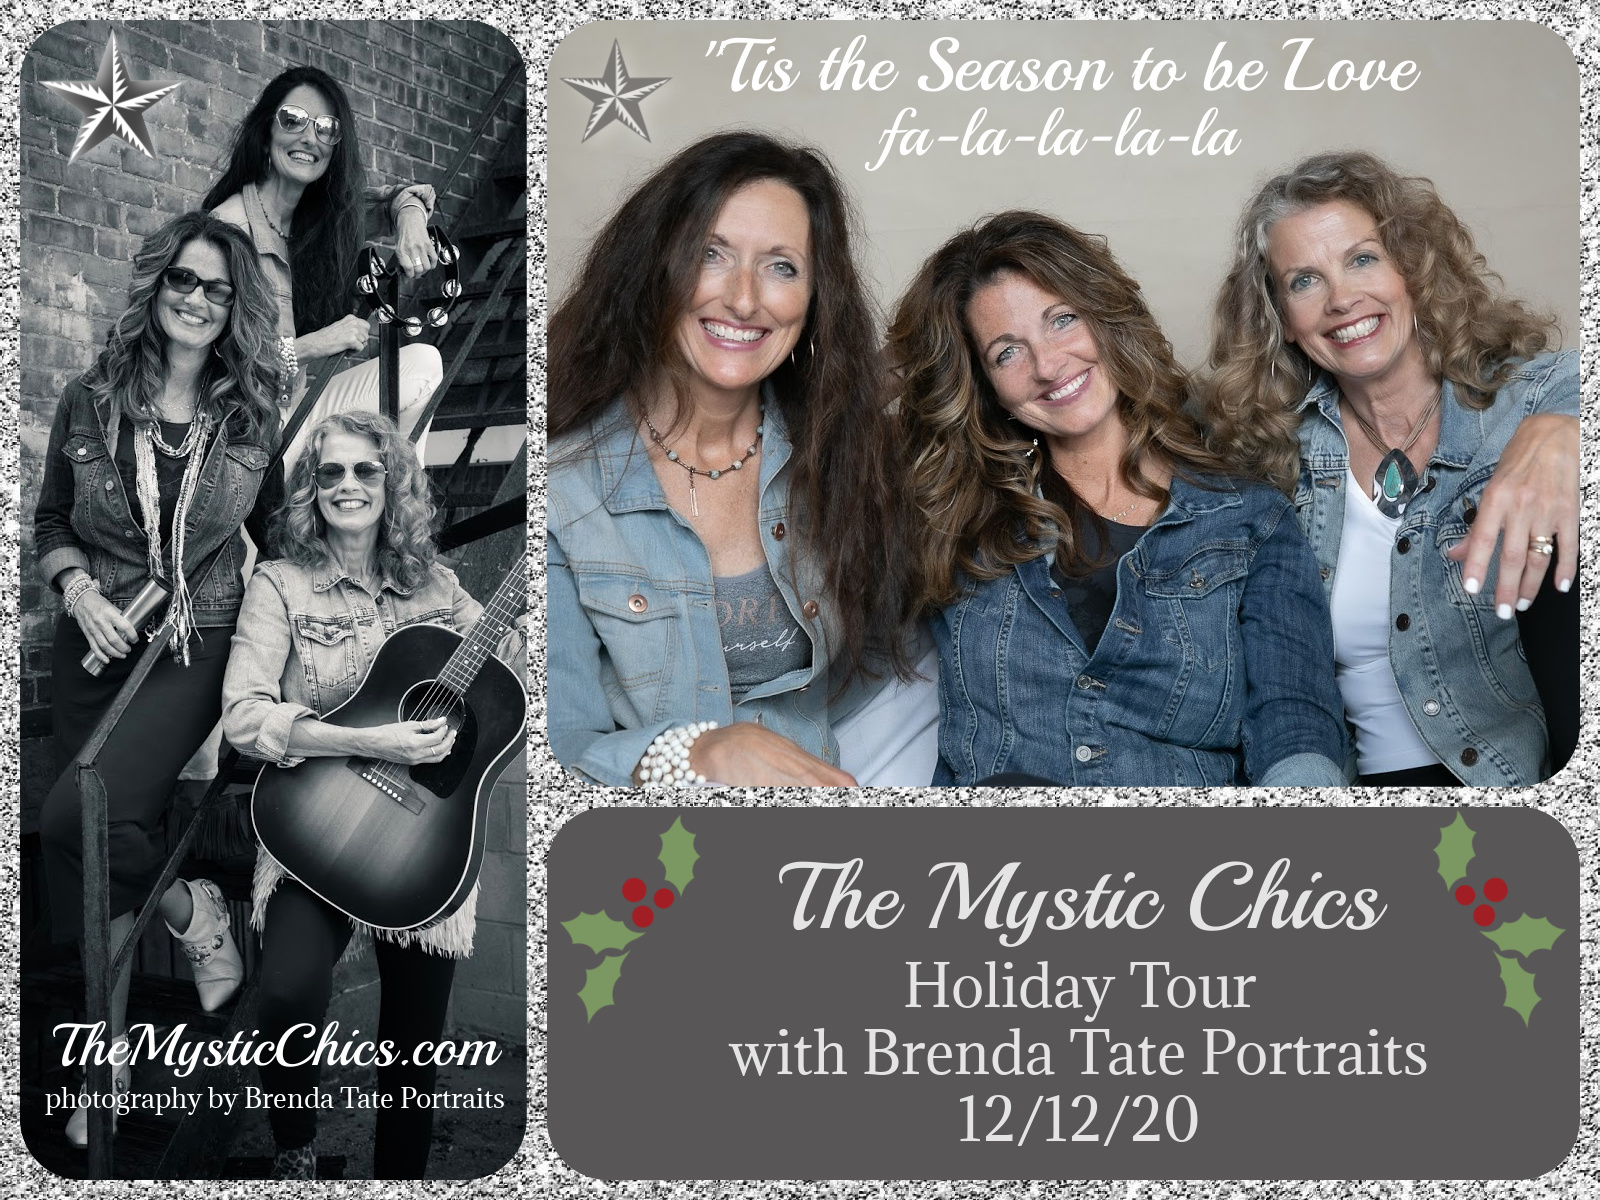 Mystic chics Holiday Tour